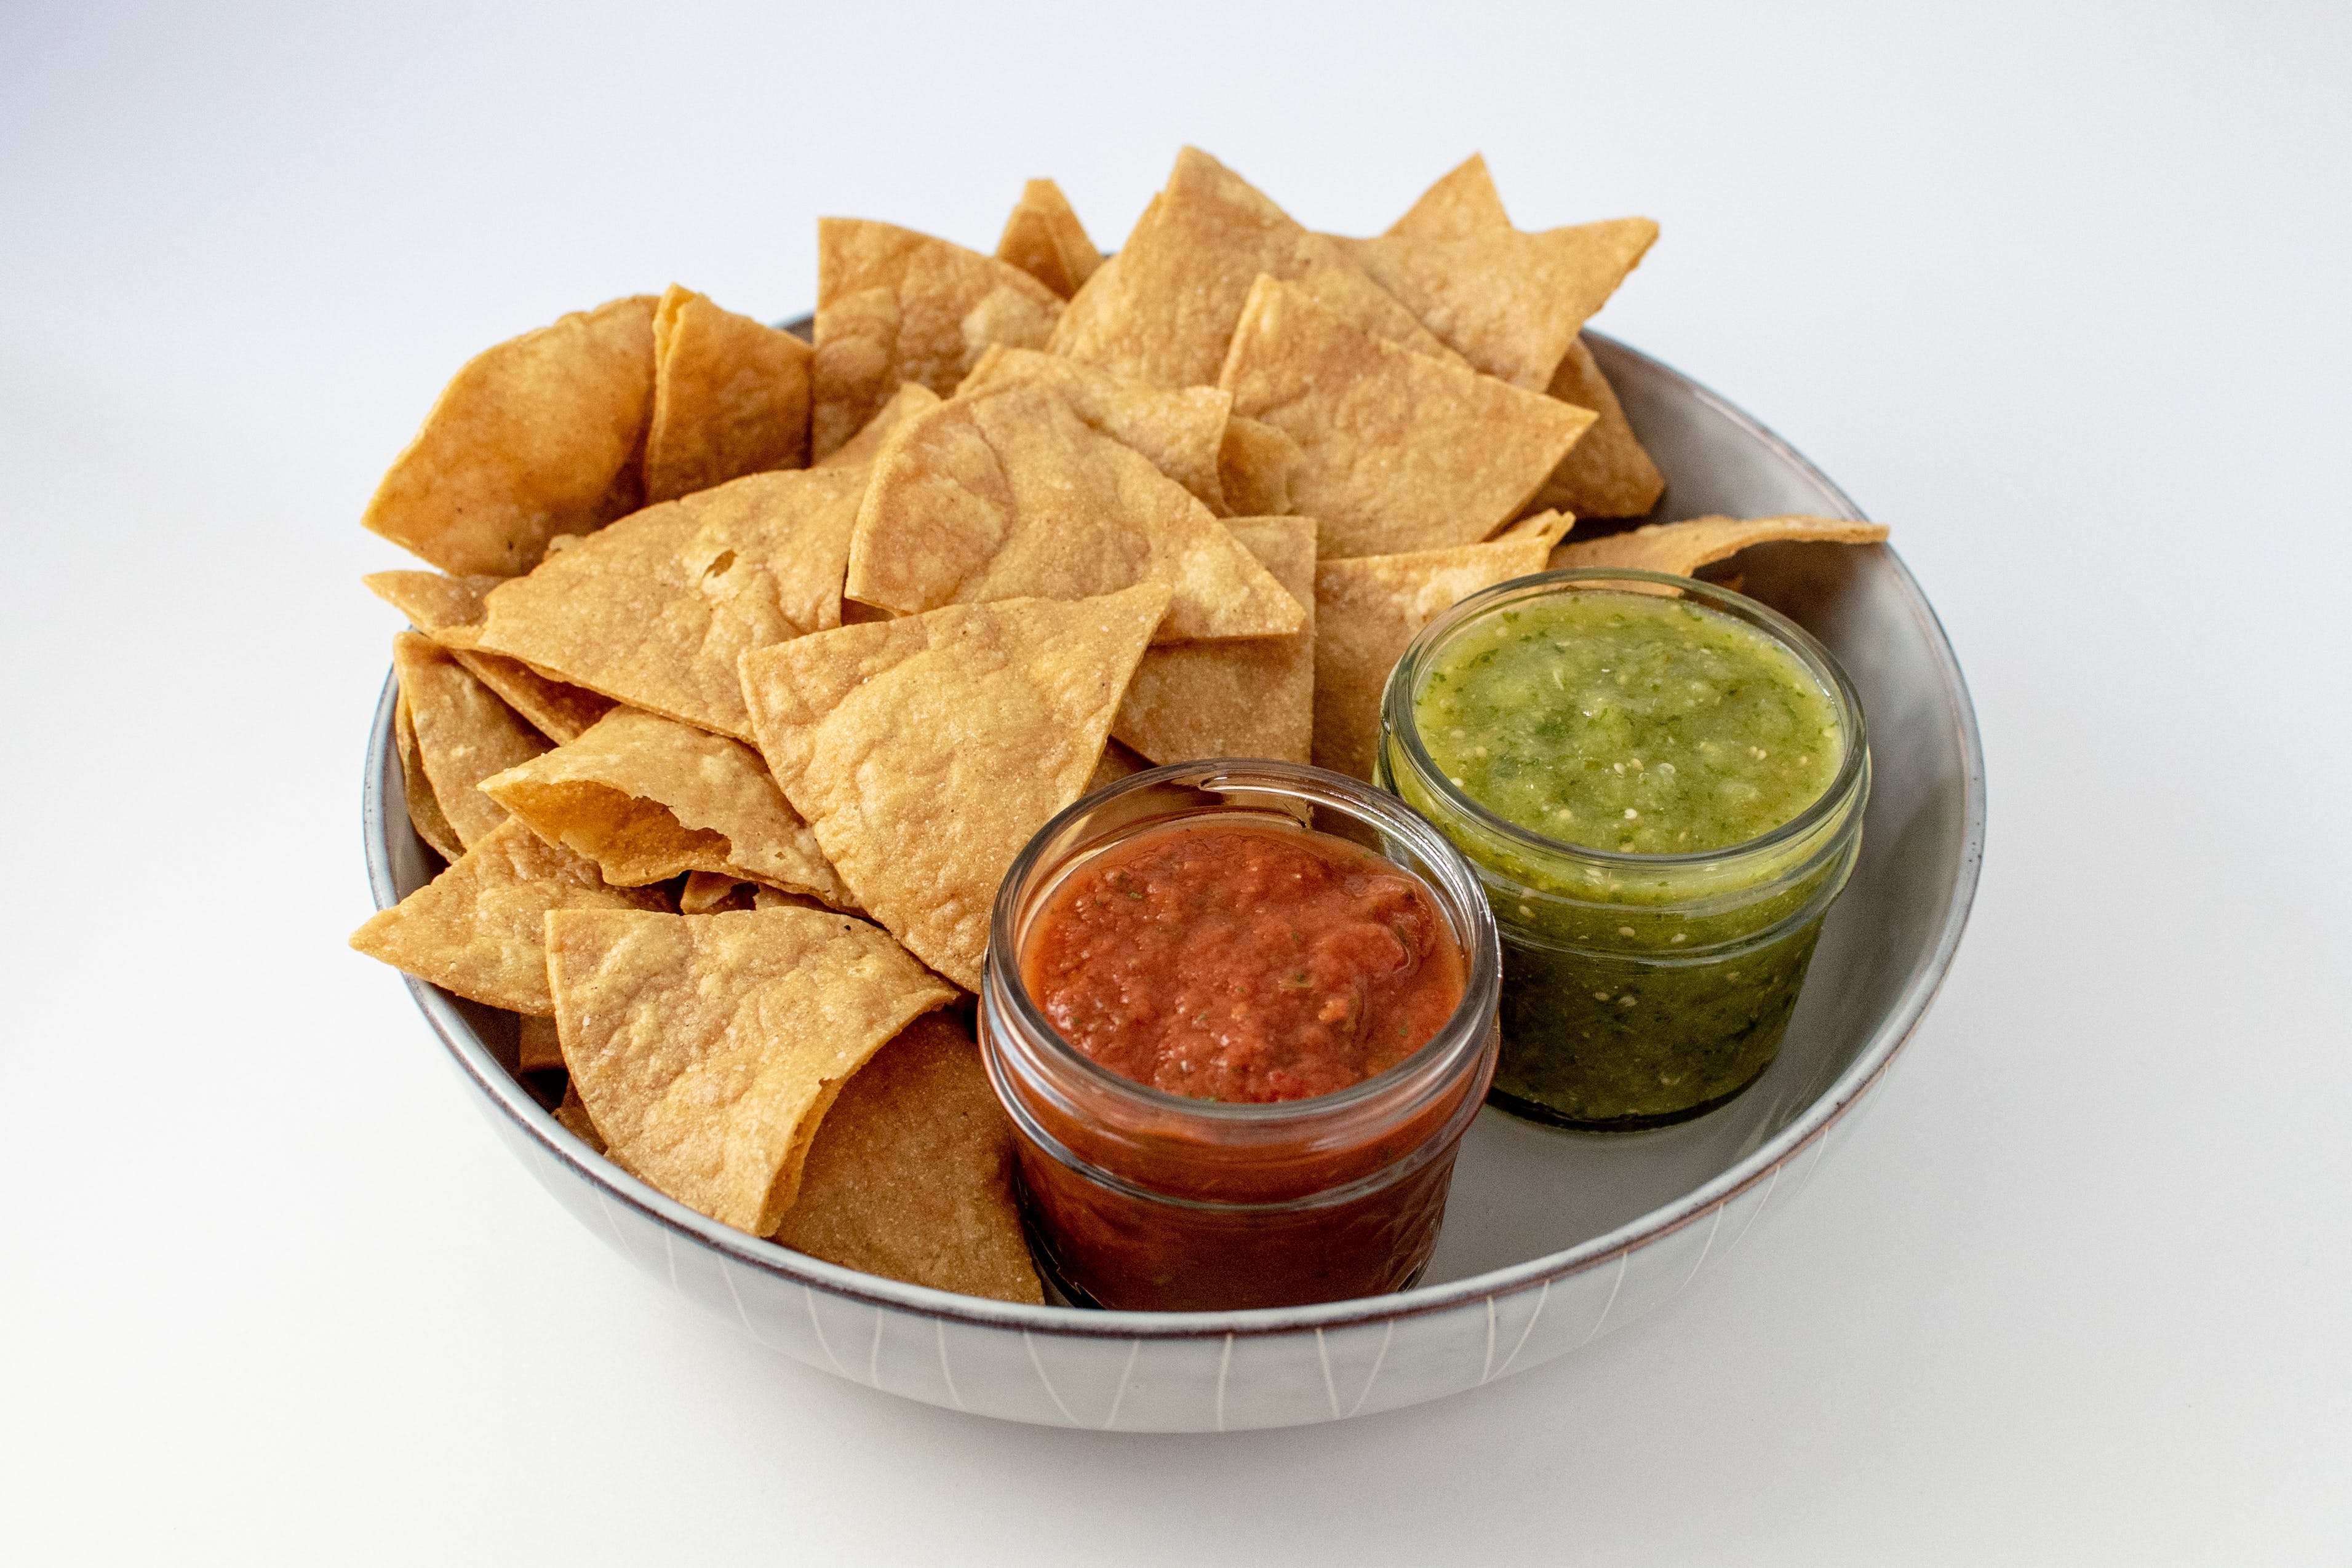 Yellow Corn Tortilla Chips and Salsas from Taco Royale - University Ave in Cedar Falls, IA